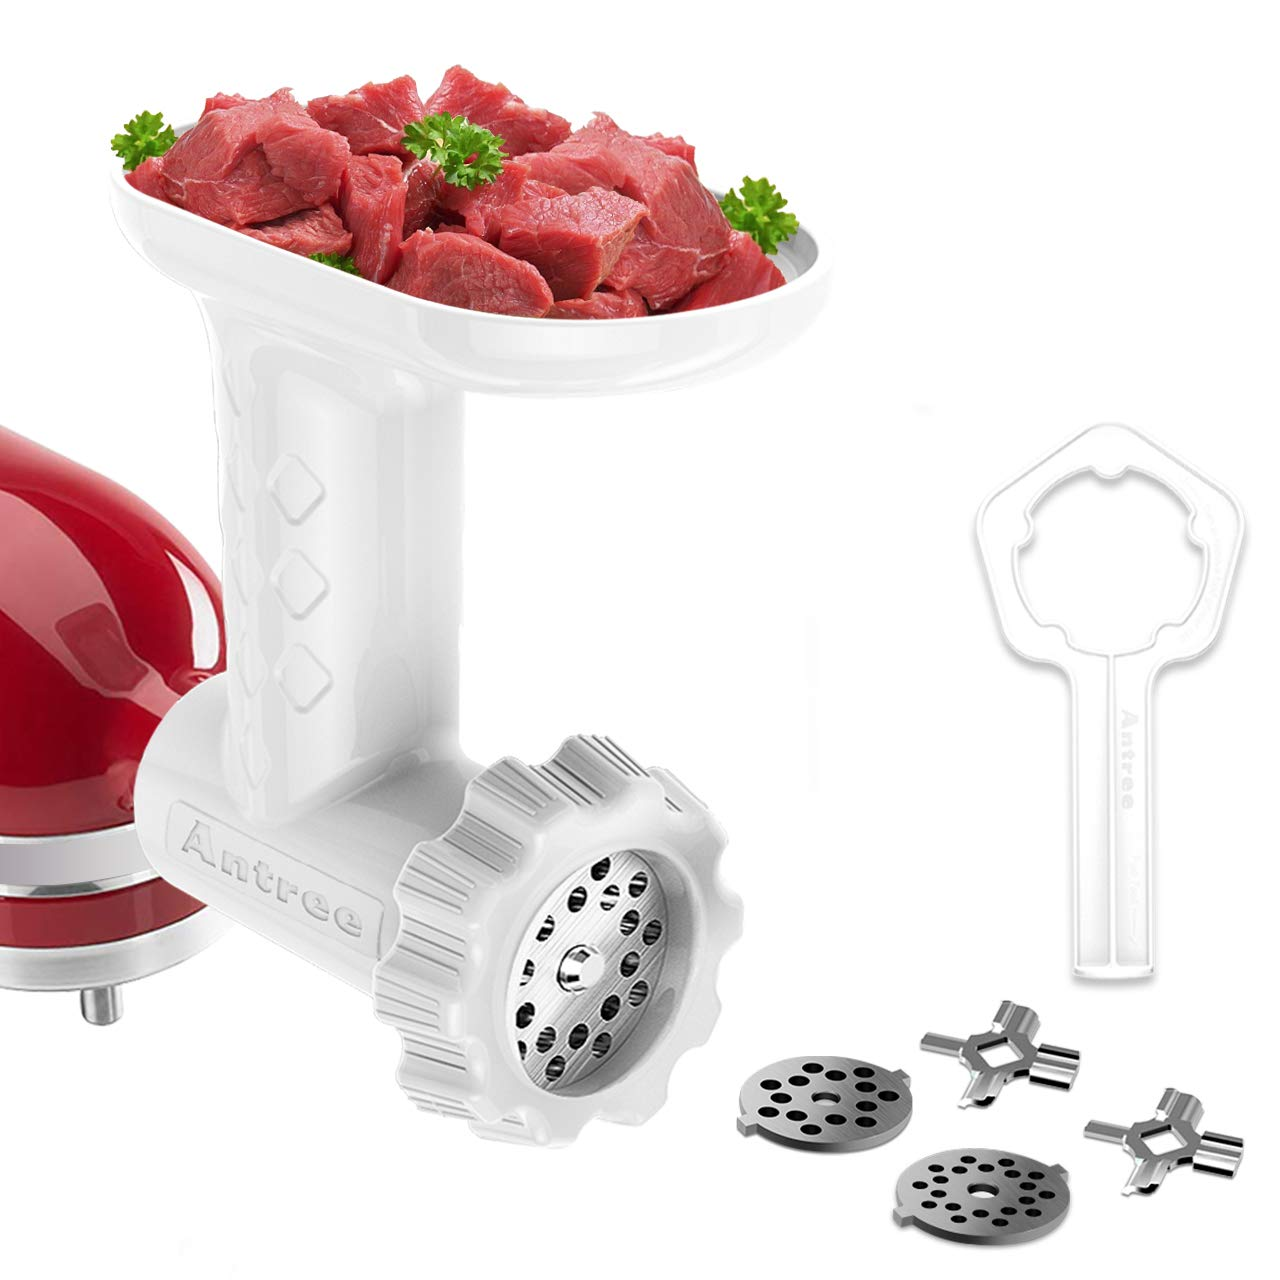 Details about Food Meat Grinder Sausage Filler Tube Attachment For Kitchen  Aid Stand Mixer